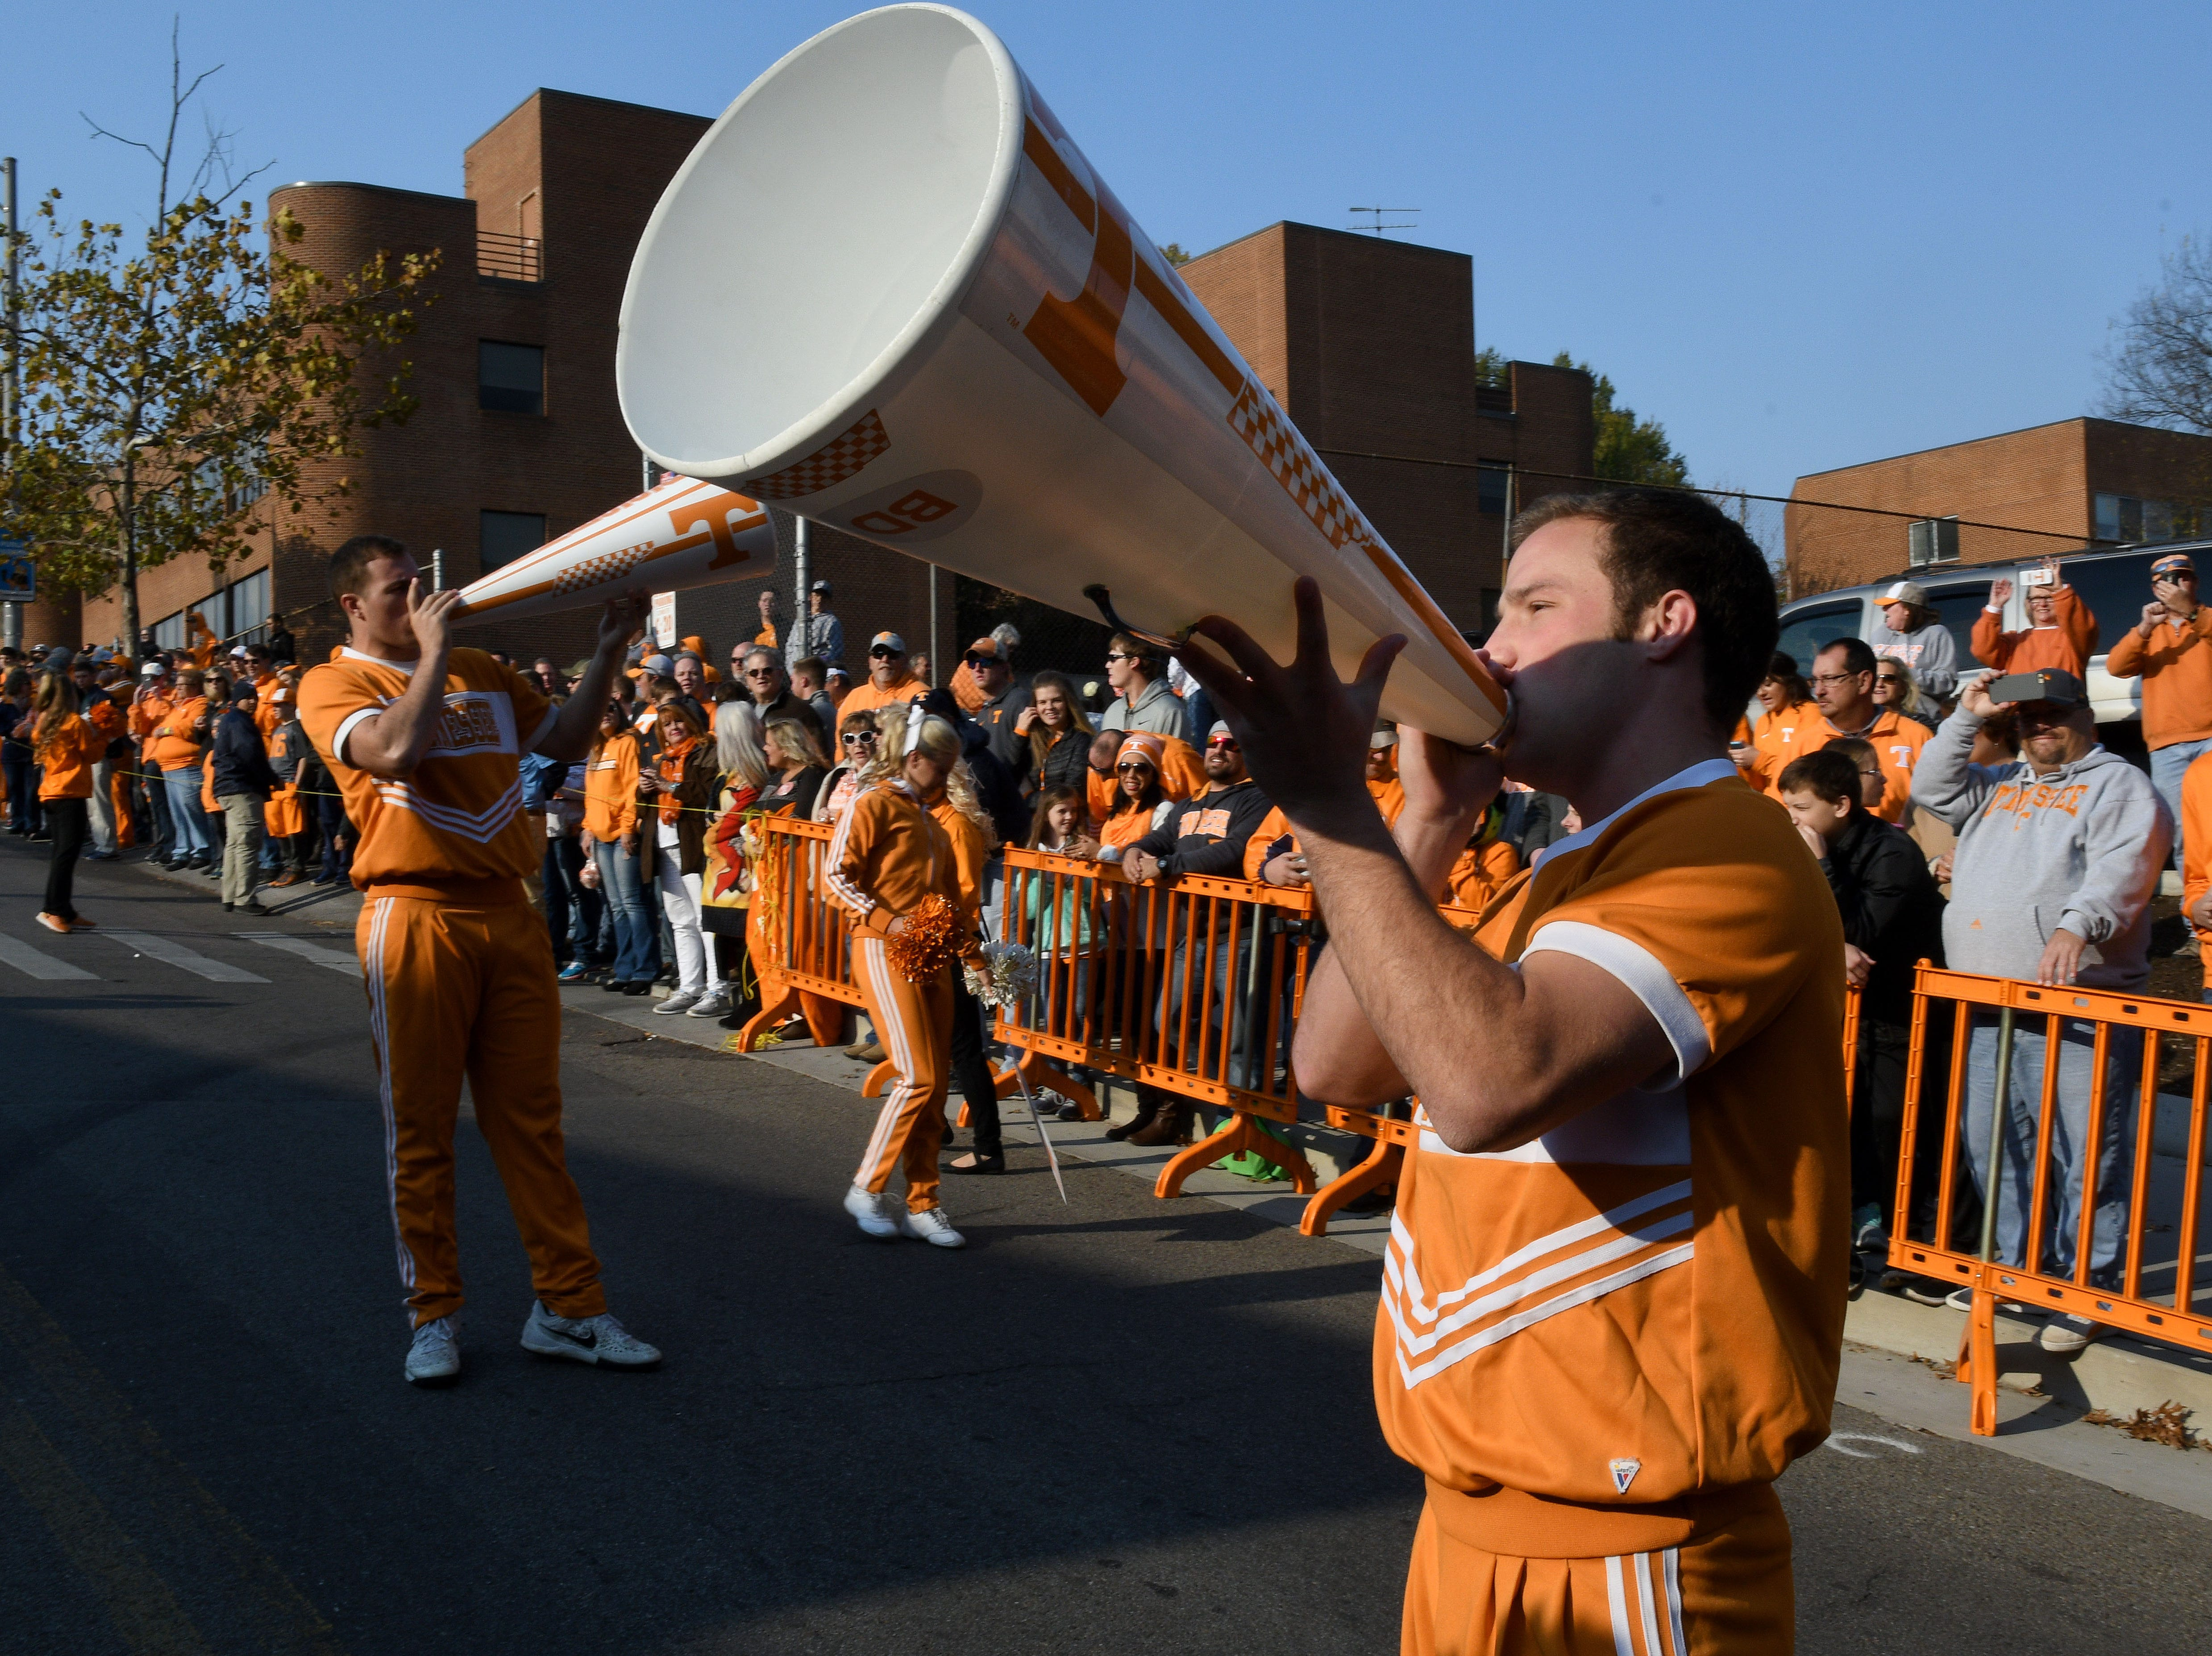 Tennessee cheerleaders prepare fans for the Vol Walk before their game against Kentucky in Neyland Stadium Saturday, Nov. 12, 2016 in Knoxville, Tenn.